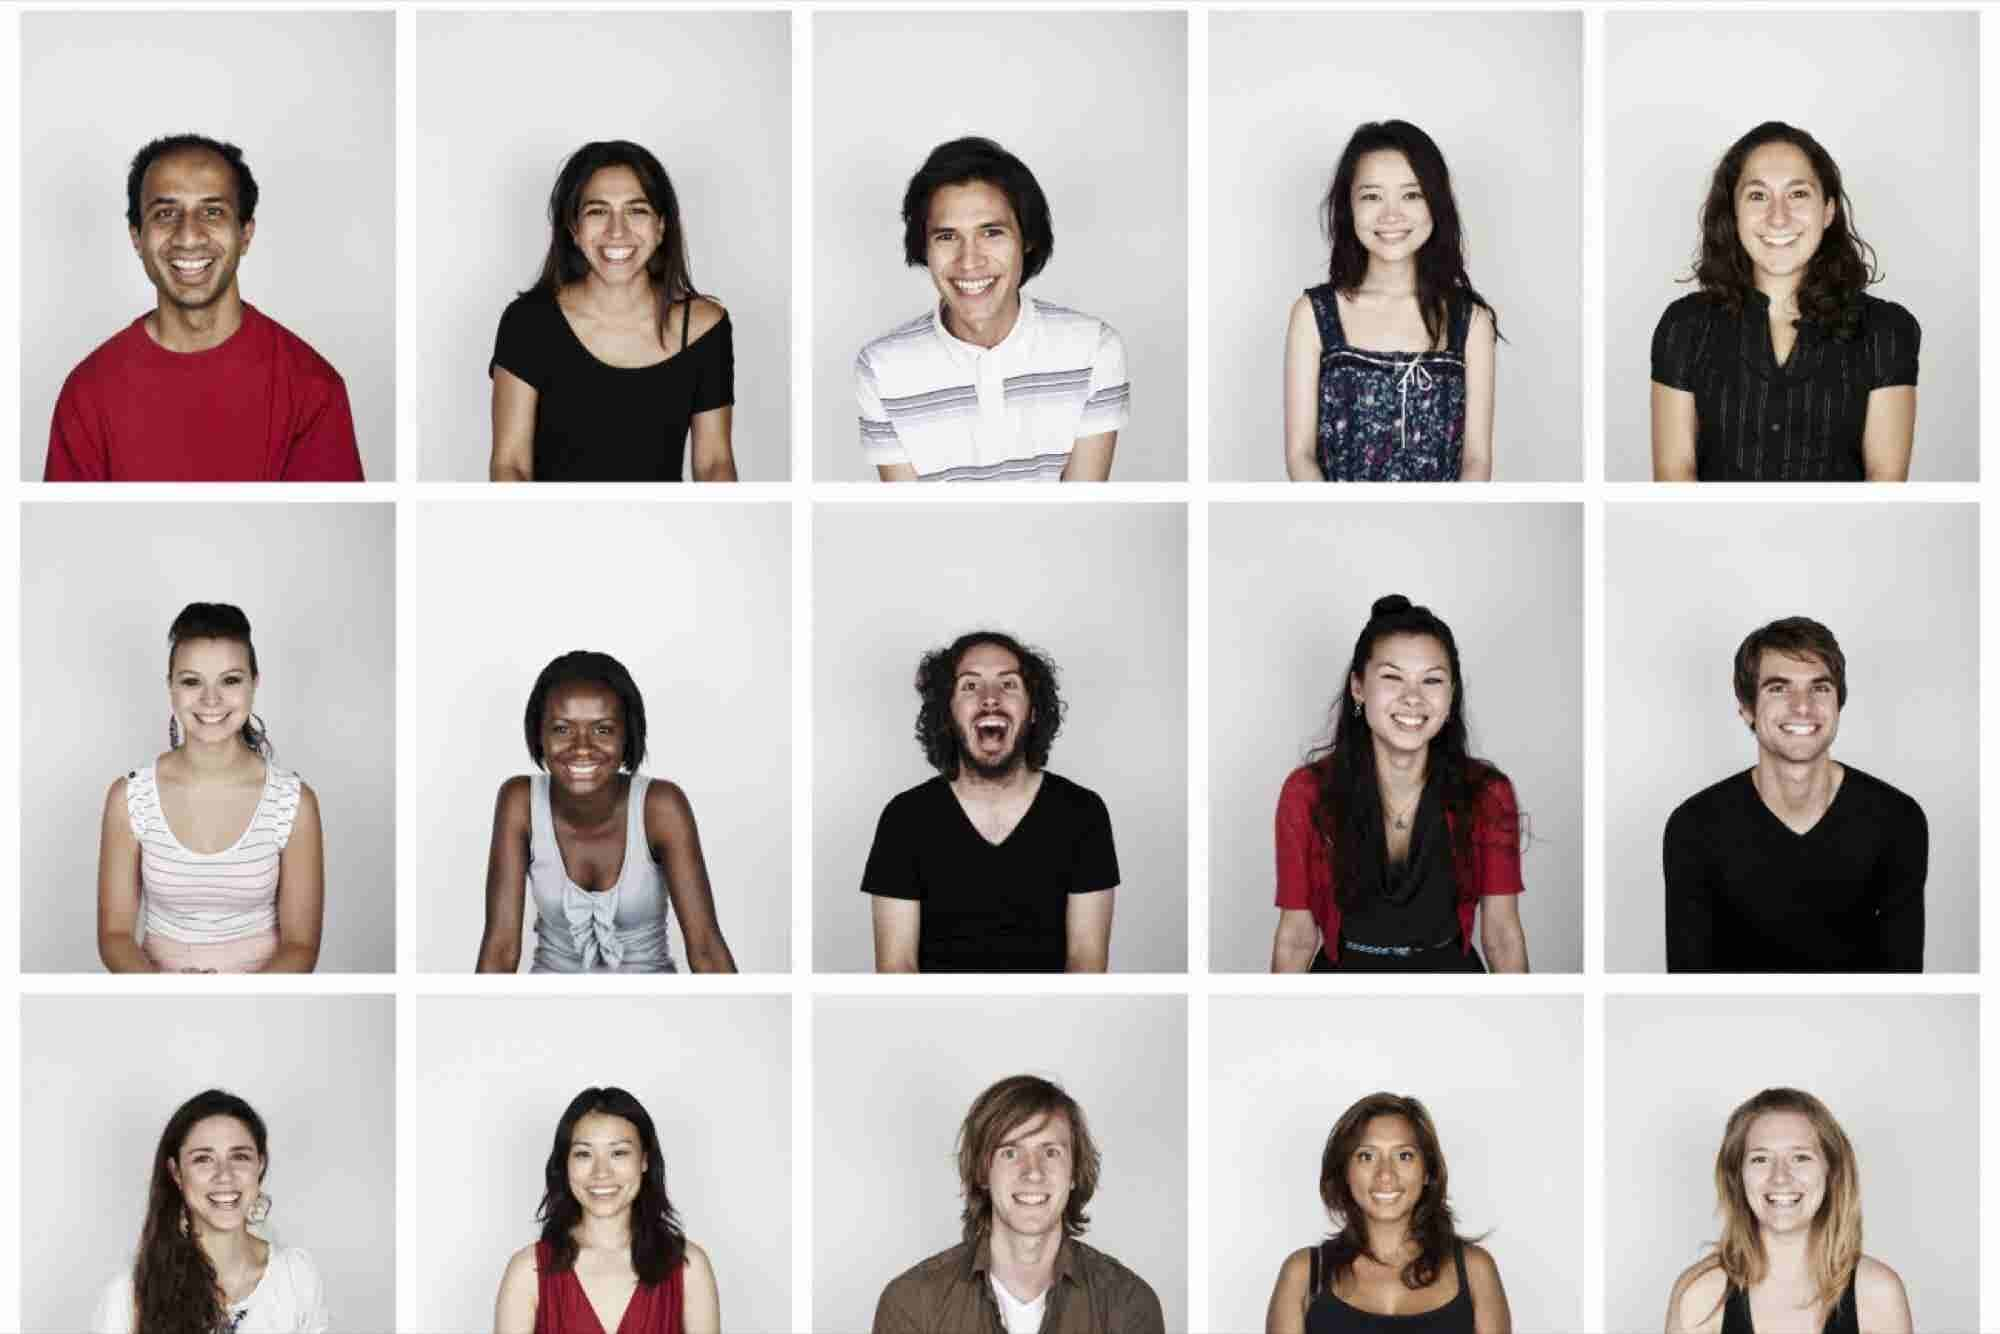 The Science Behind Picking the Perfect LinkedIn Head Shot